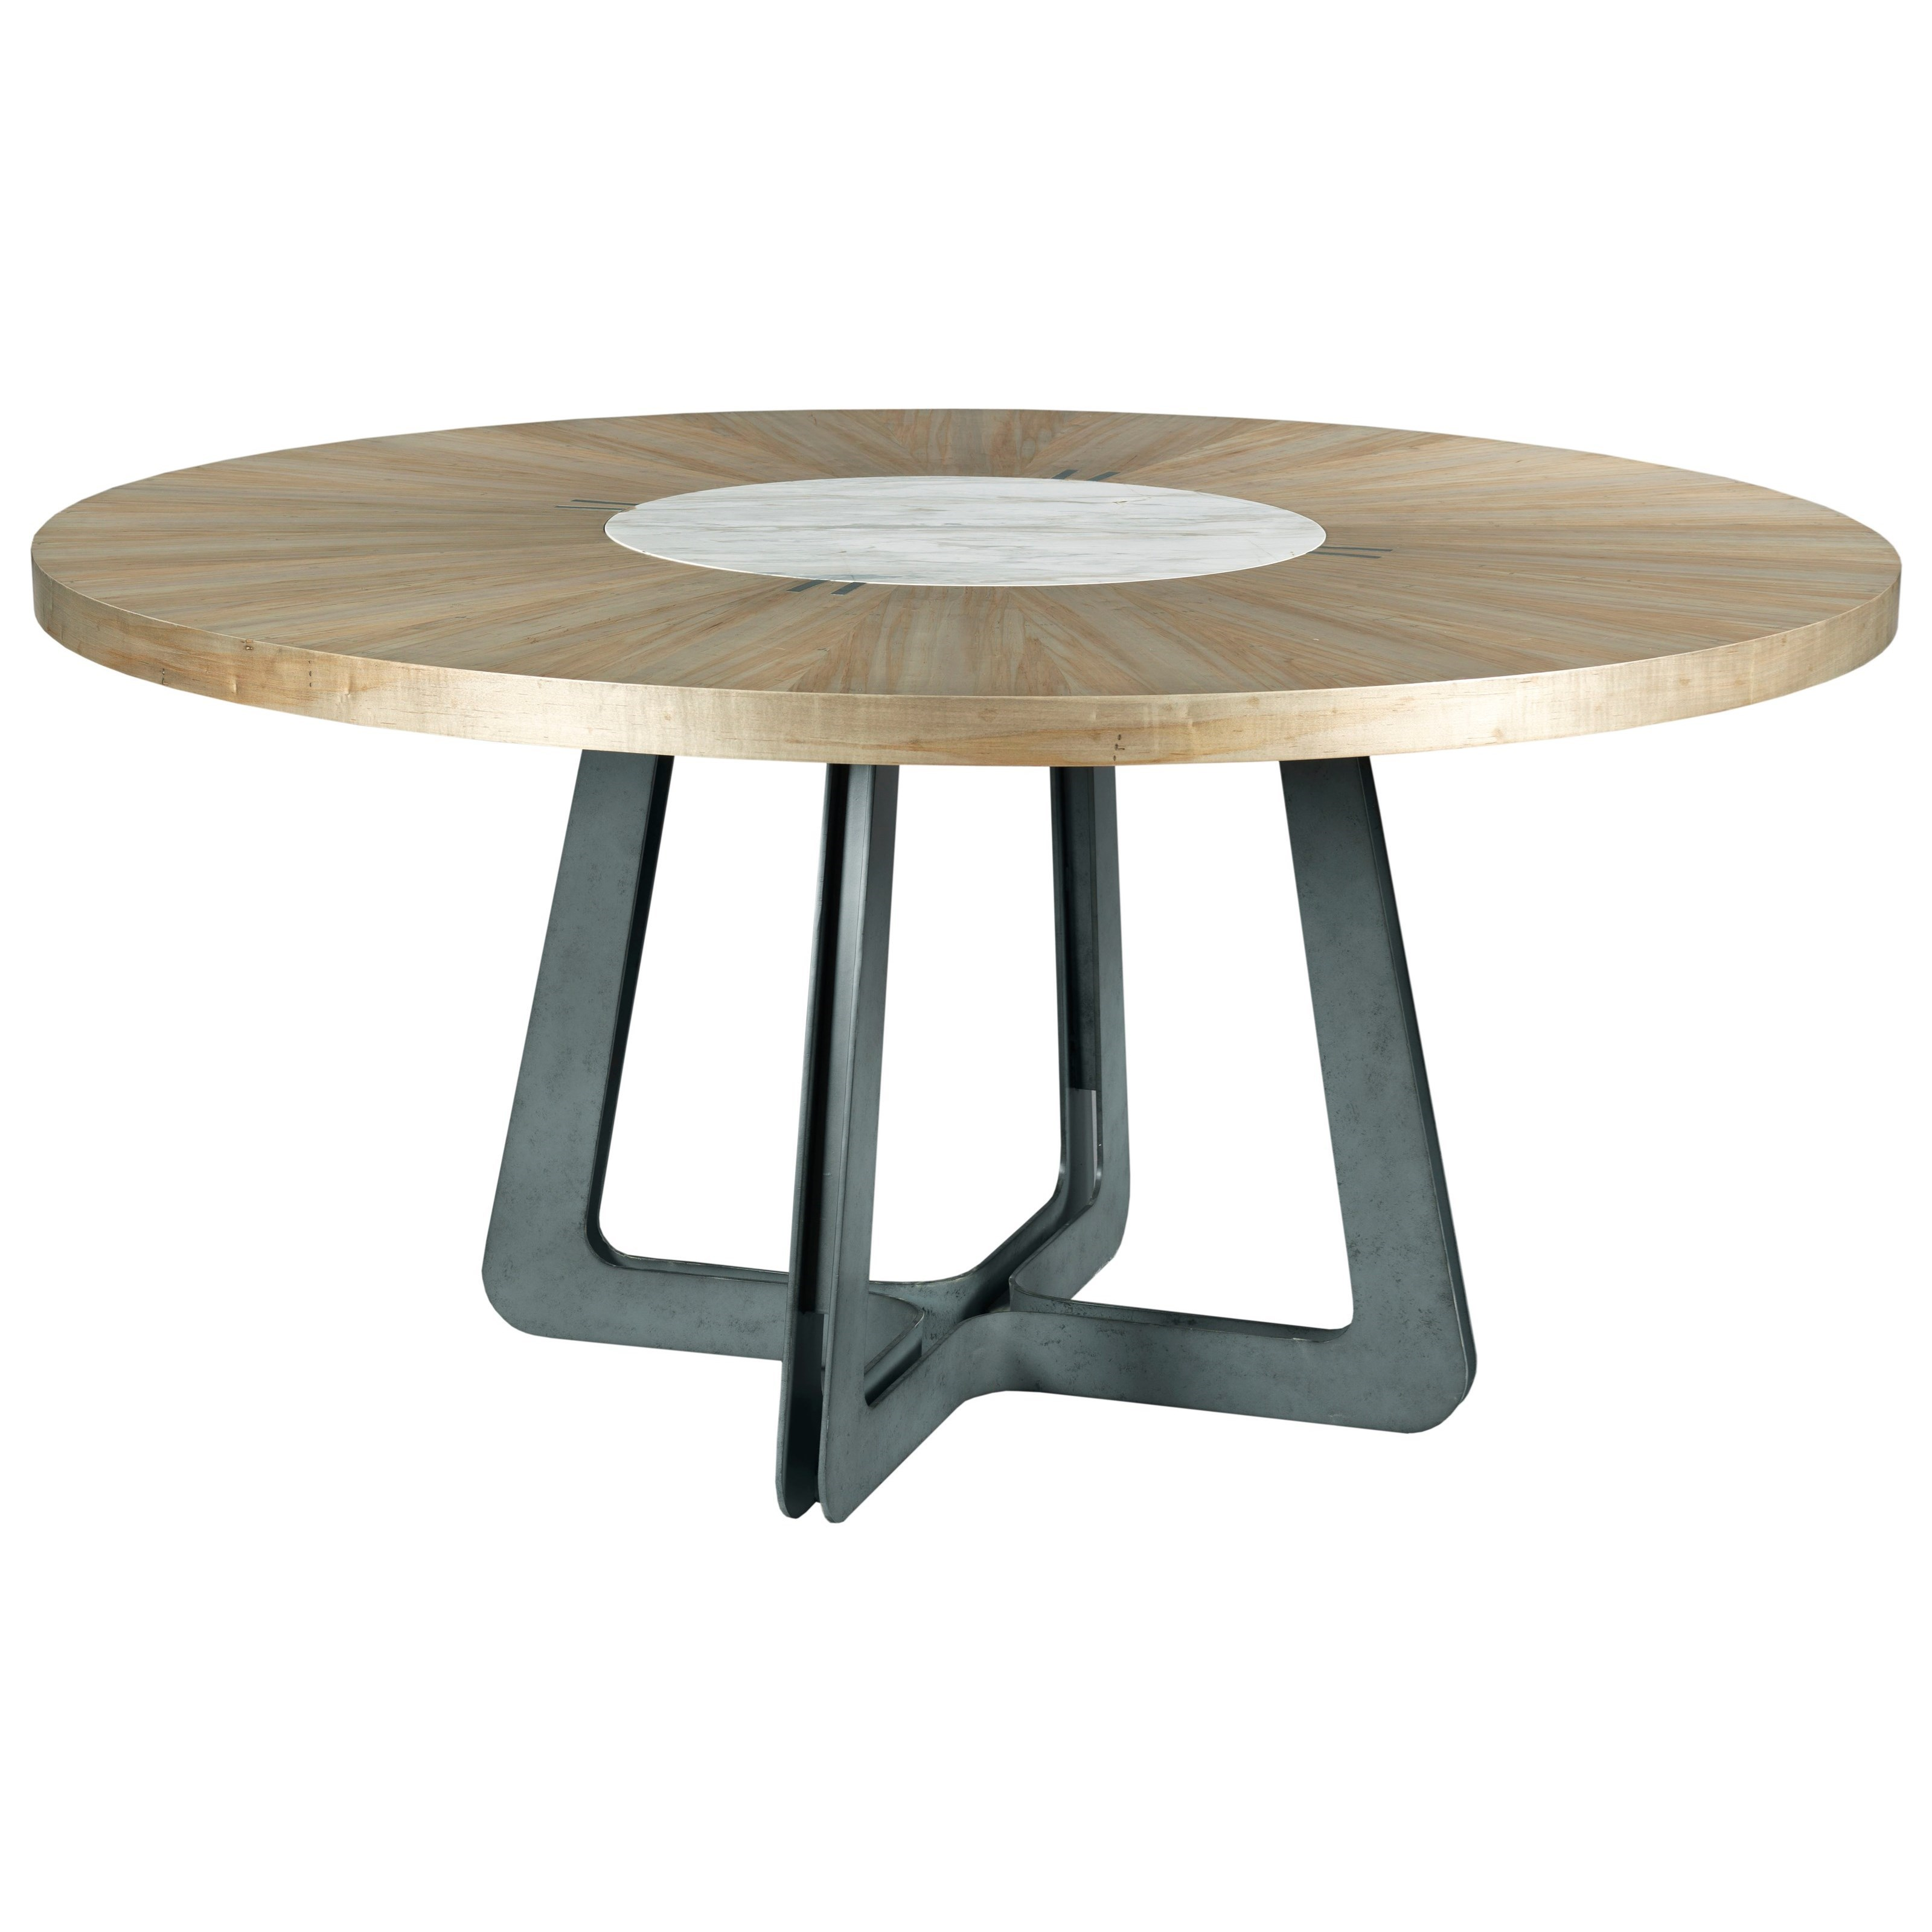 Modern Synergy Concentric Round Table by American Drew at Stoney Creek Furniture